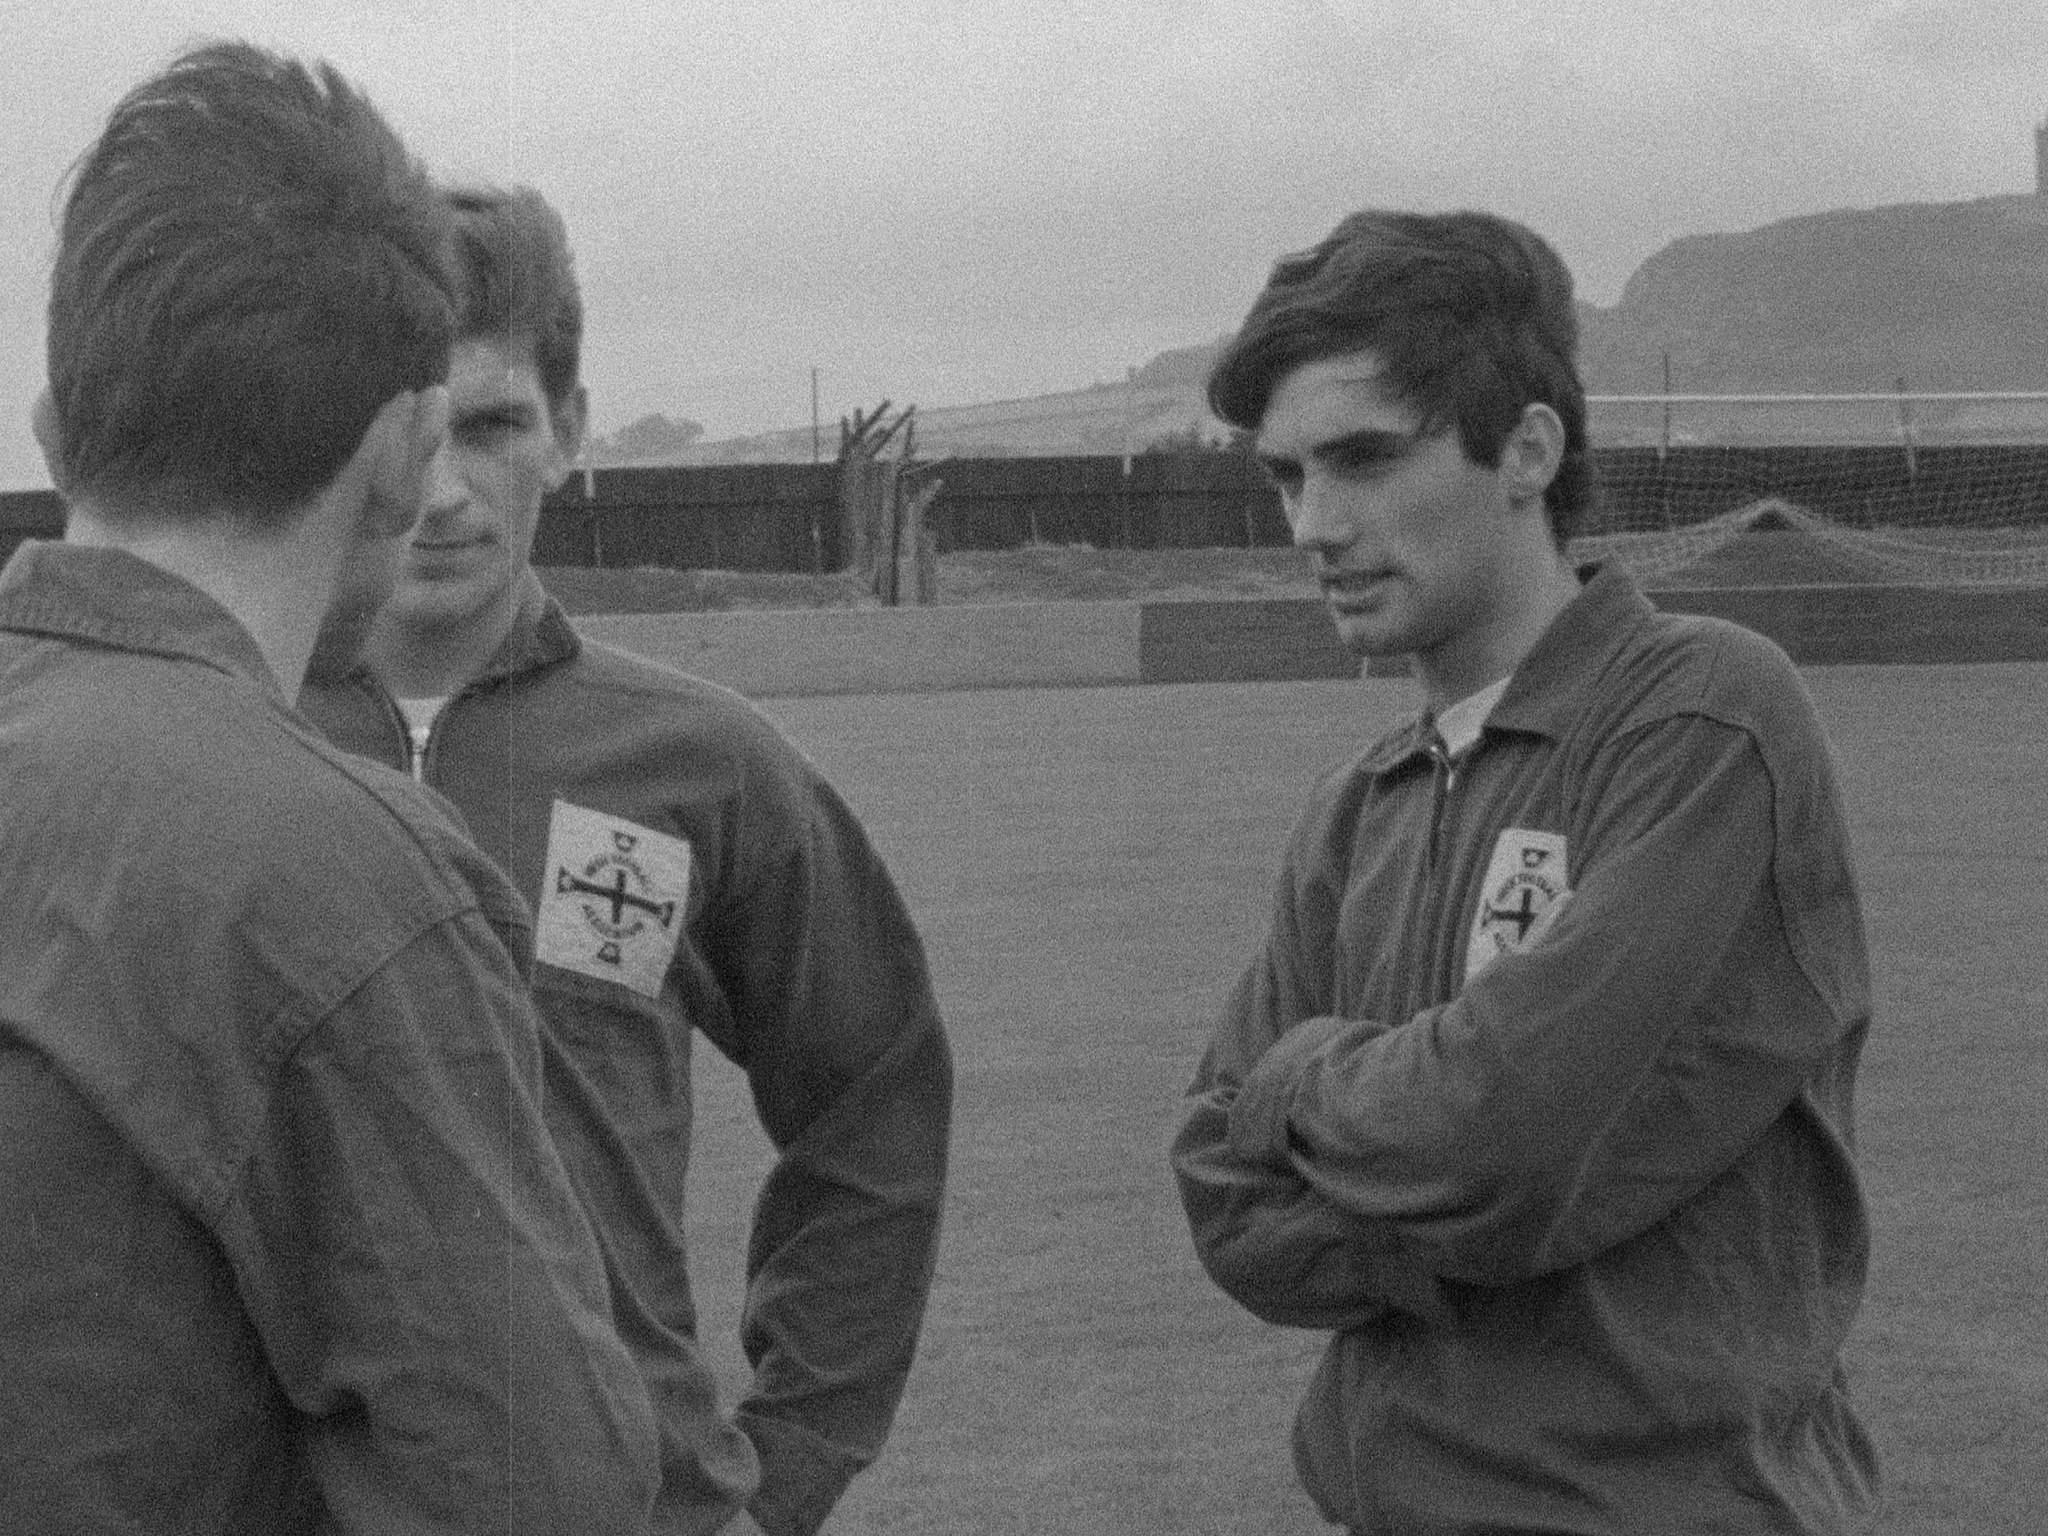 George Best (R) at football training